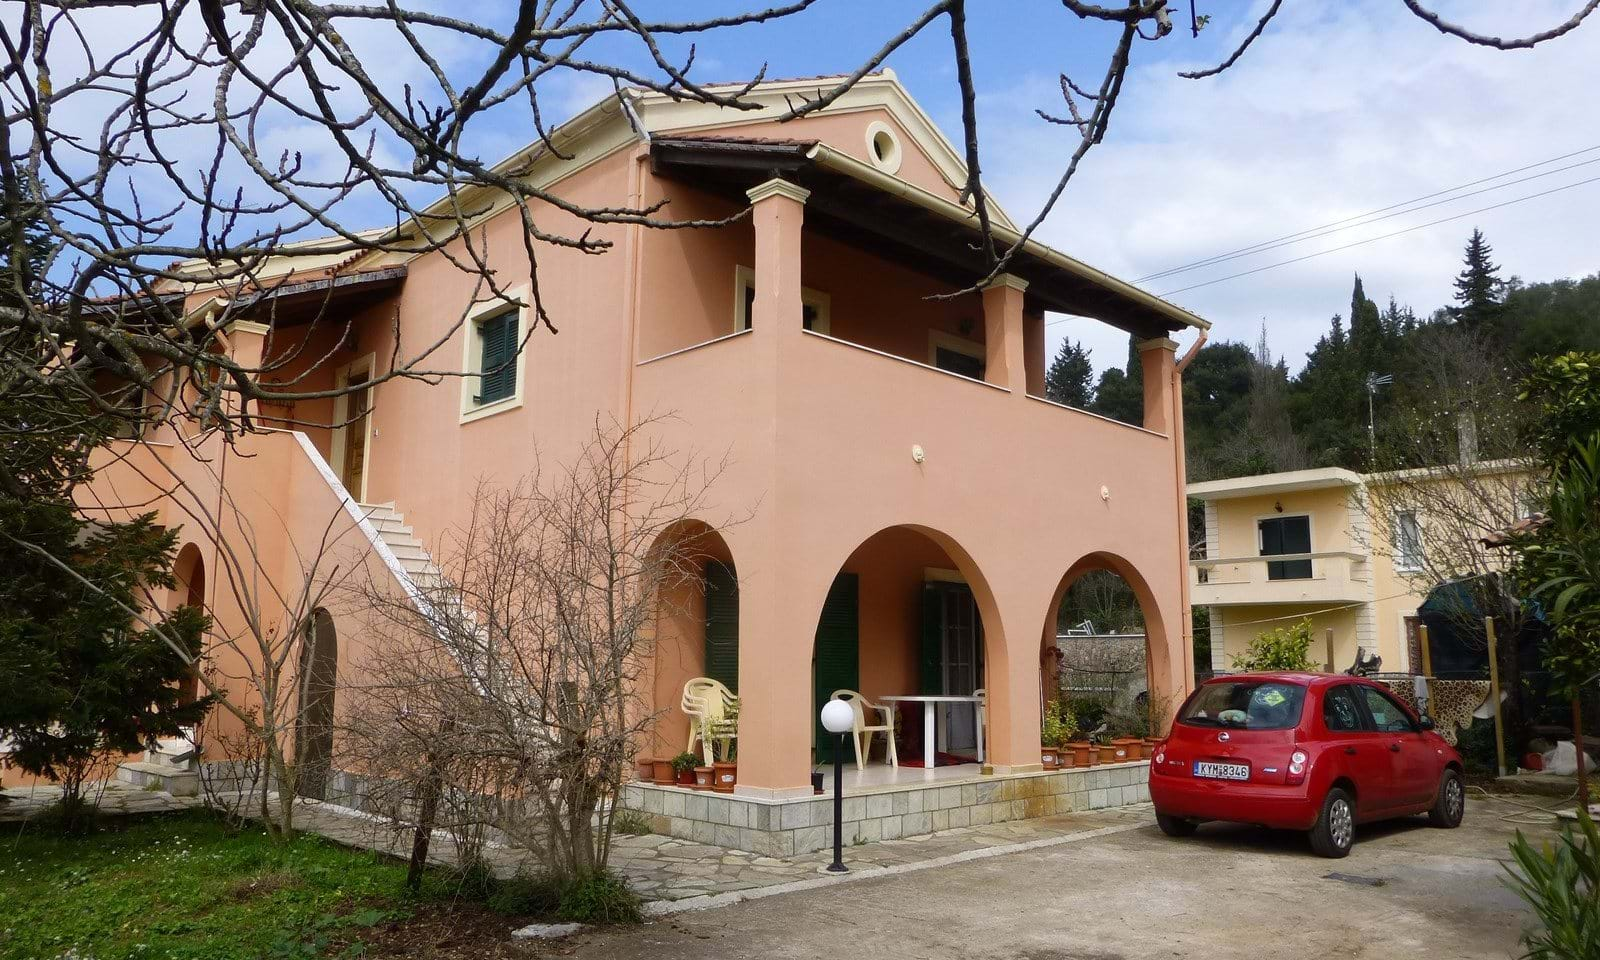 Property for sale in central Corfu Greece